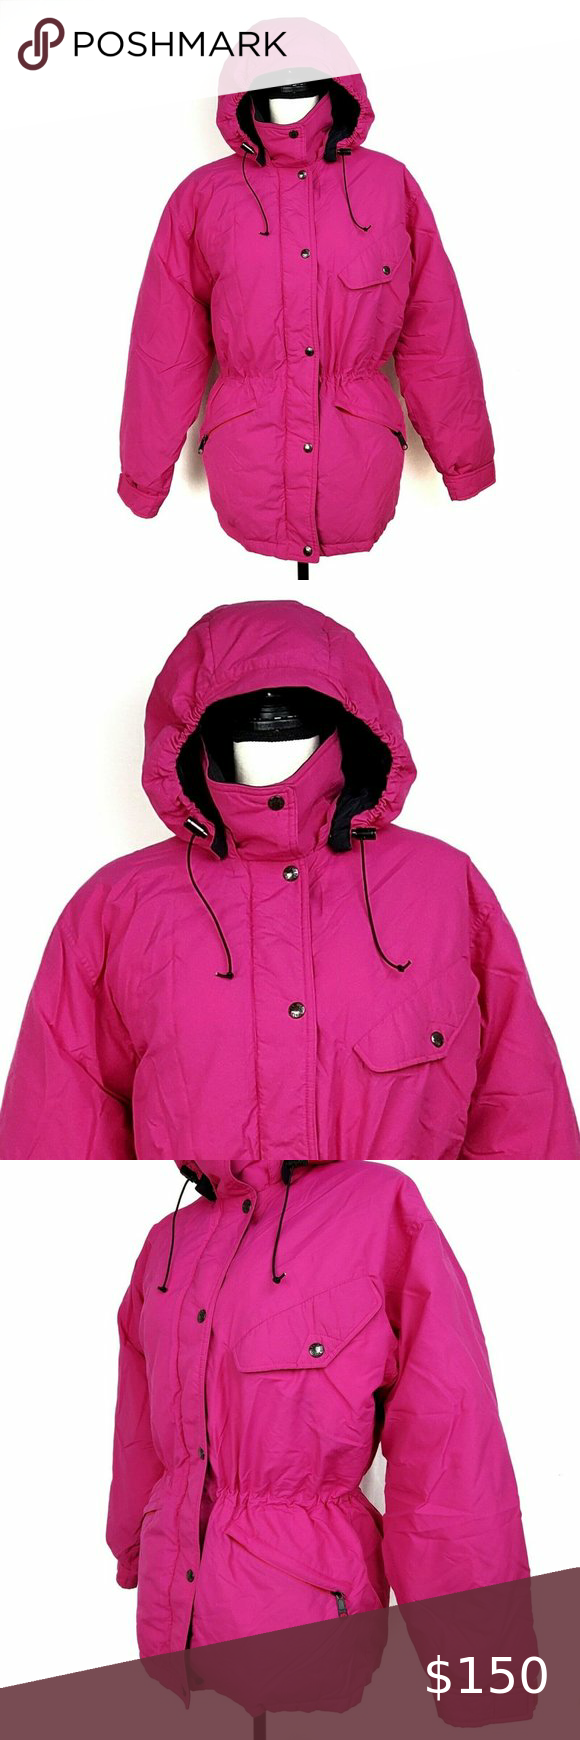 The North Face Jacket Pink Black Down Filled Parka North Face Jacket North Face Hyvent Jacket Black Down [ 1740 x 580 Pixel ]